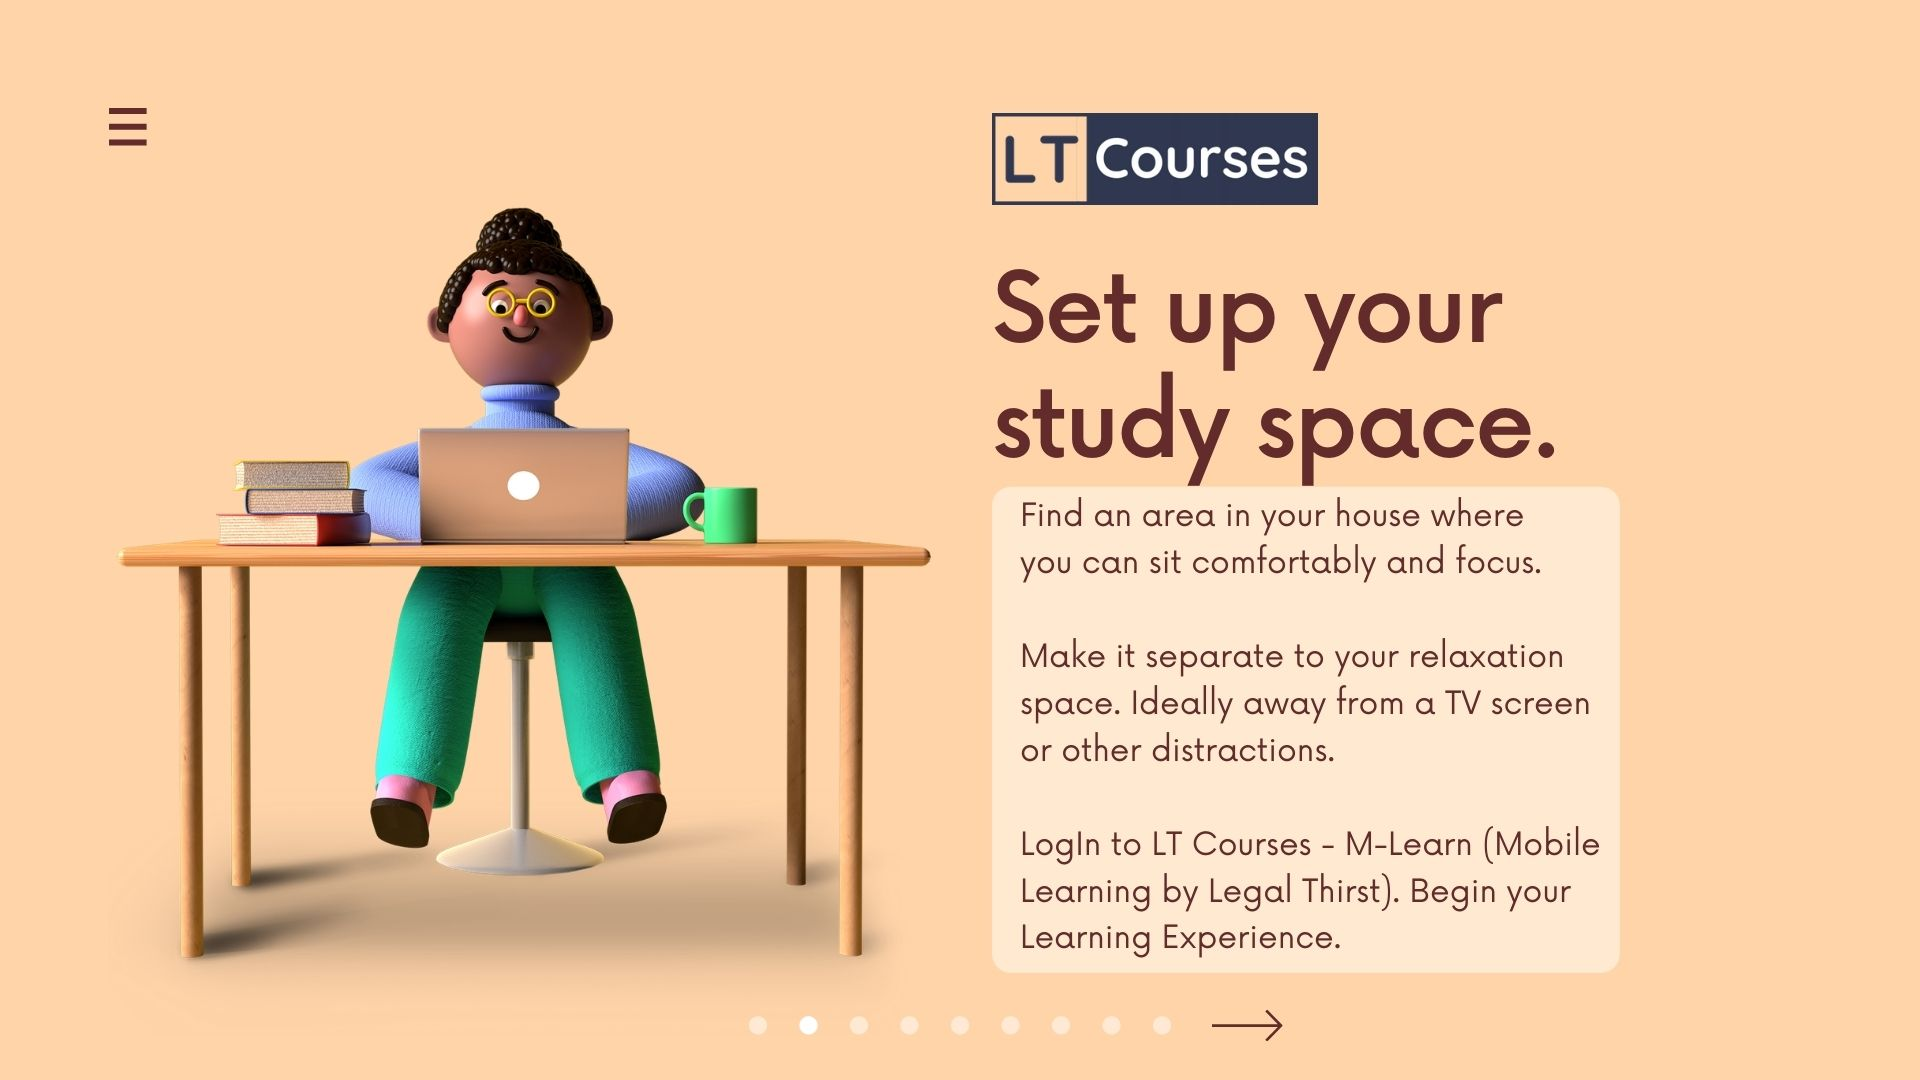 Start Learning from Home by LT Courses M-Learn